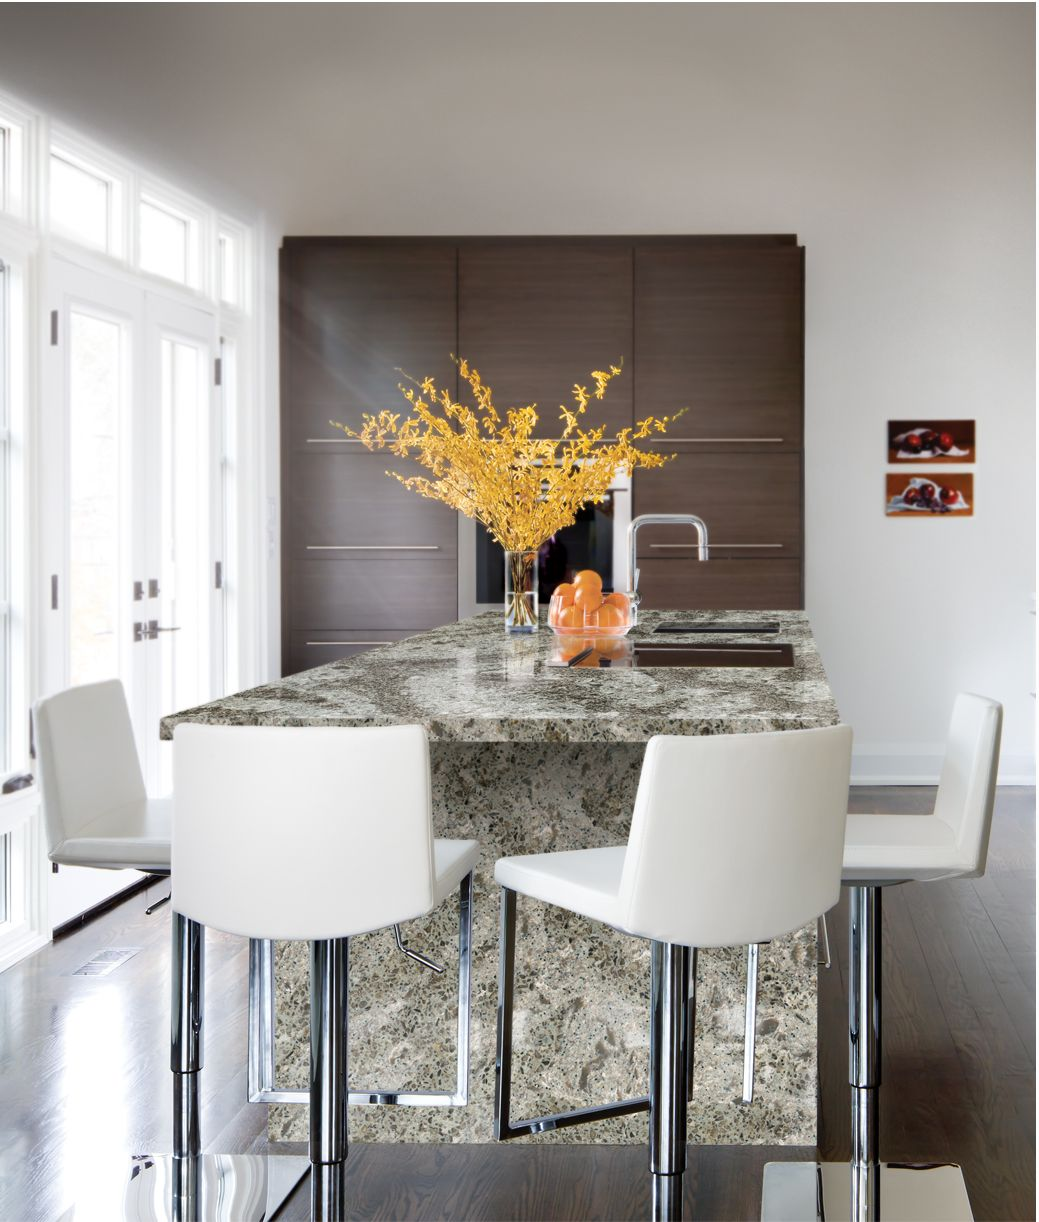 cambria coastal collection s newest design of quartz countertop cambria coastal collection s newest design of quartz countertop galloway available at coast design